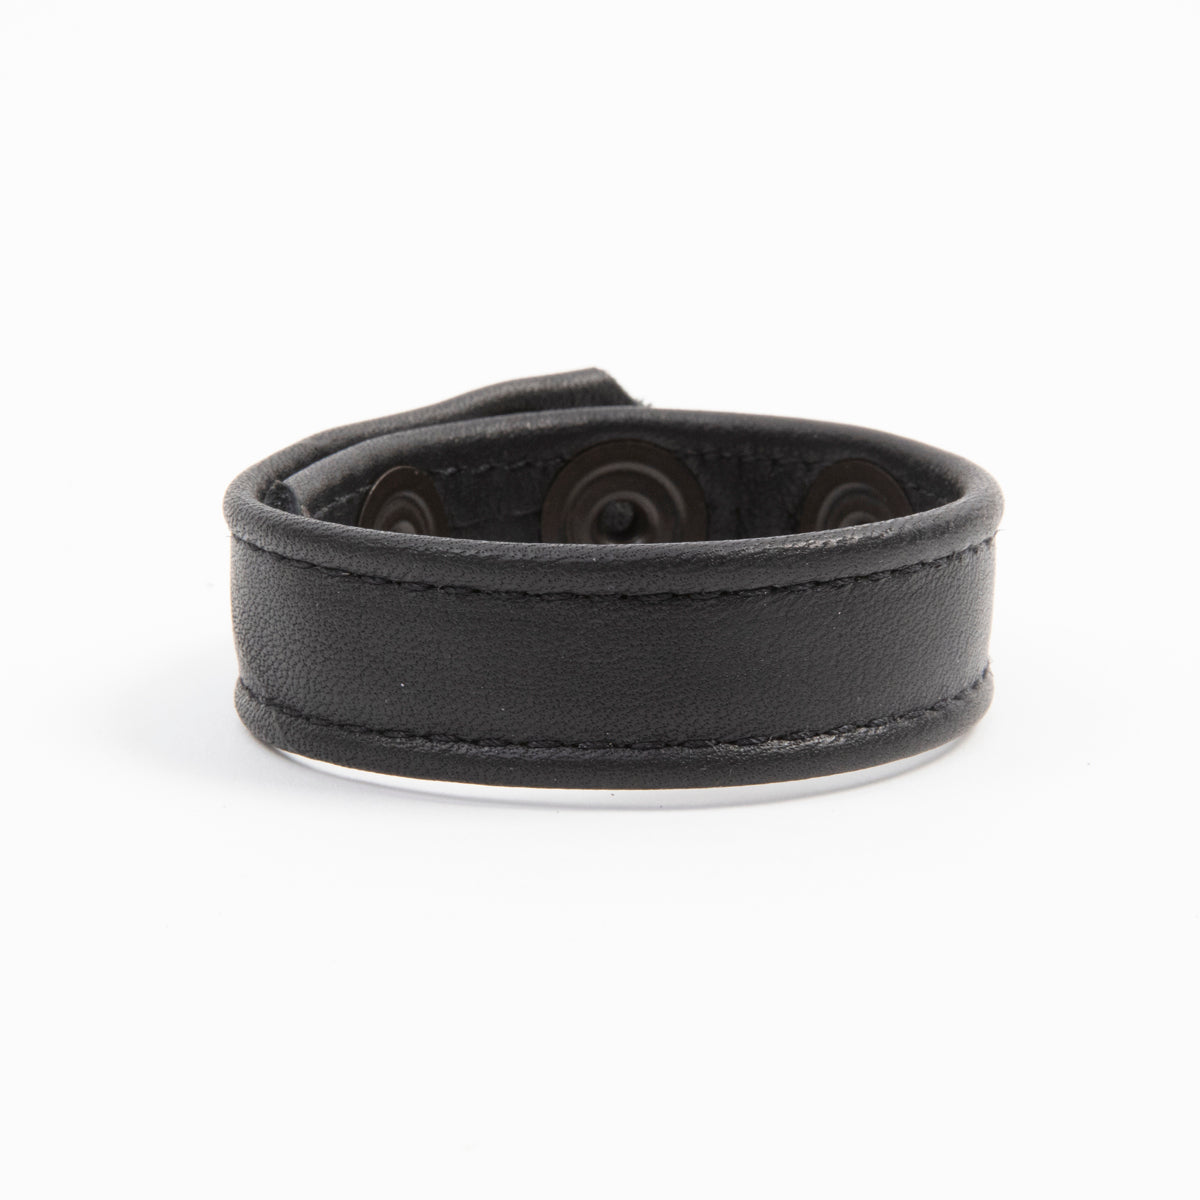 P&C Creations Leather C-Ring Wristbands Various Options